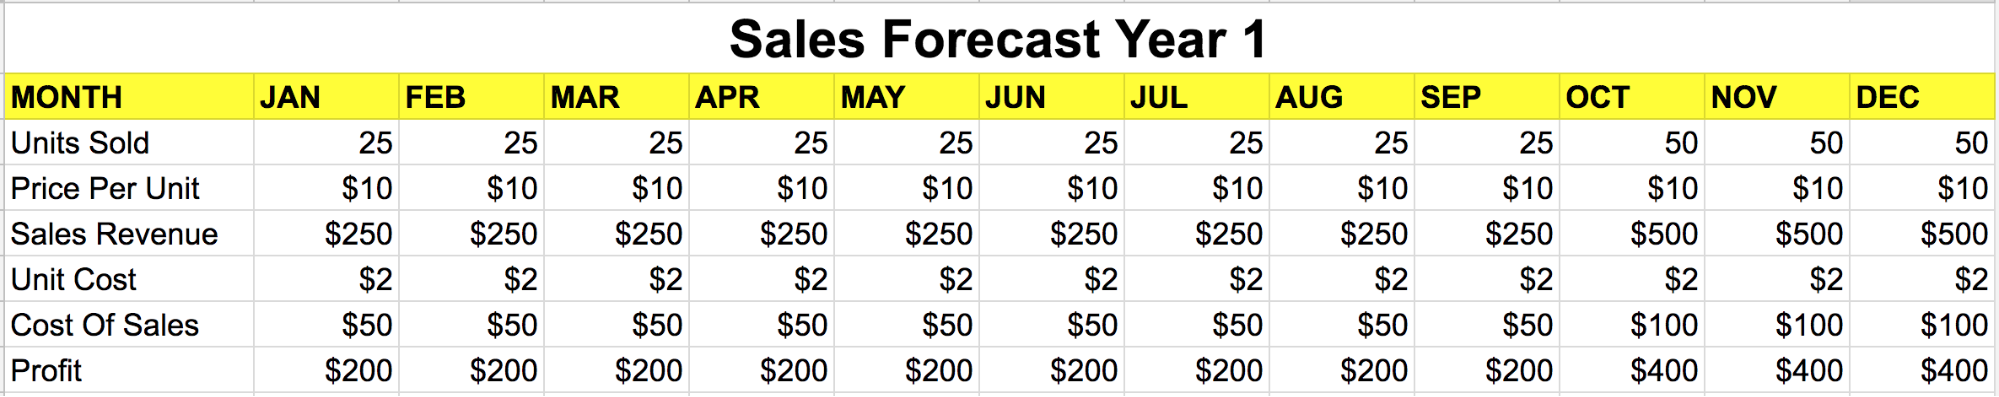 Spreadsheet showing the sales forecast for a product for the 1st year